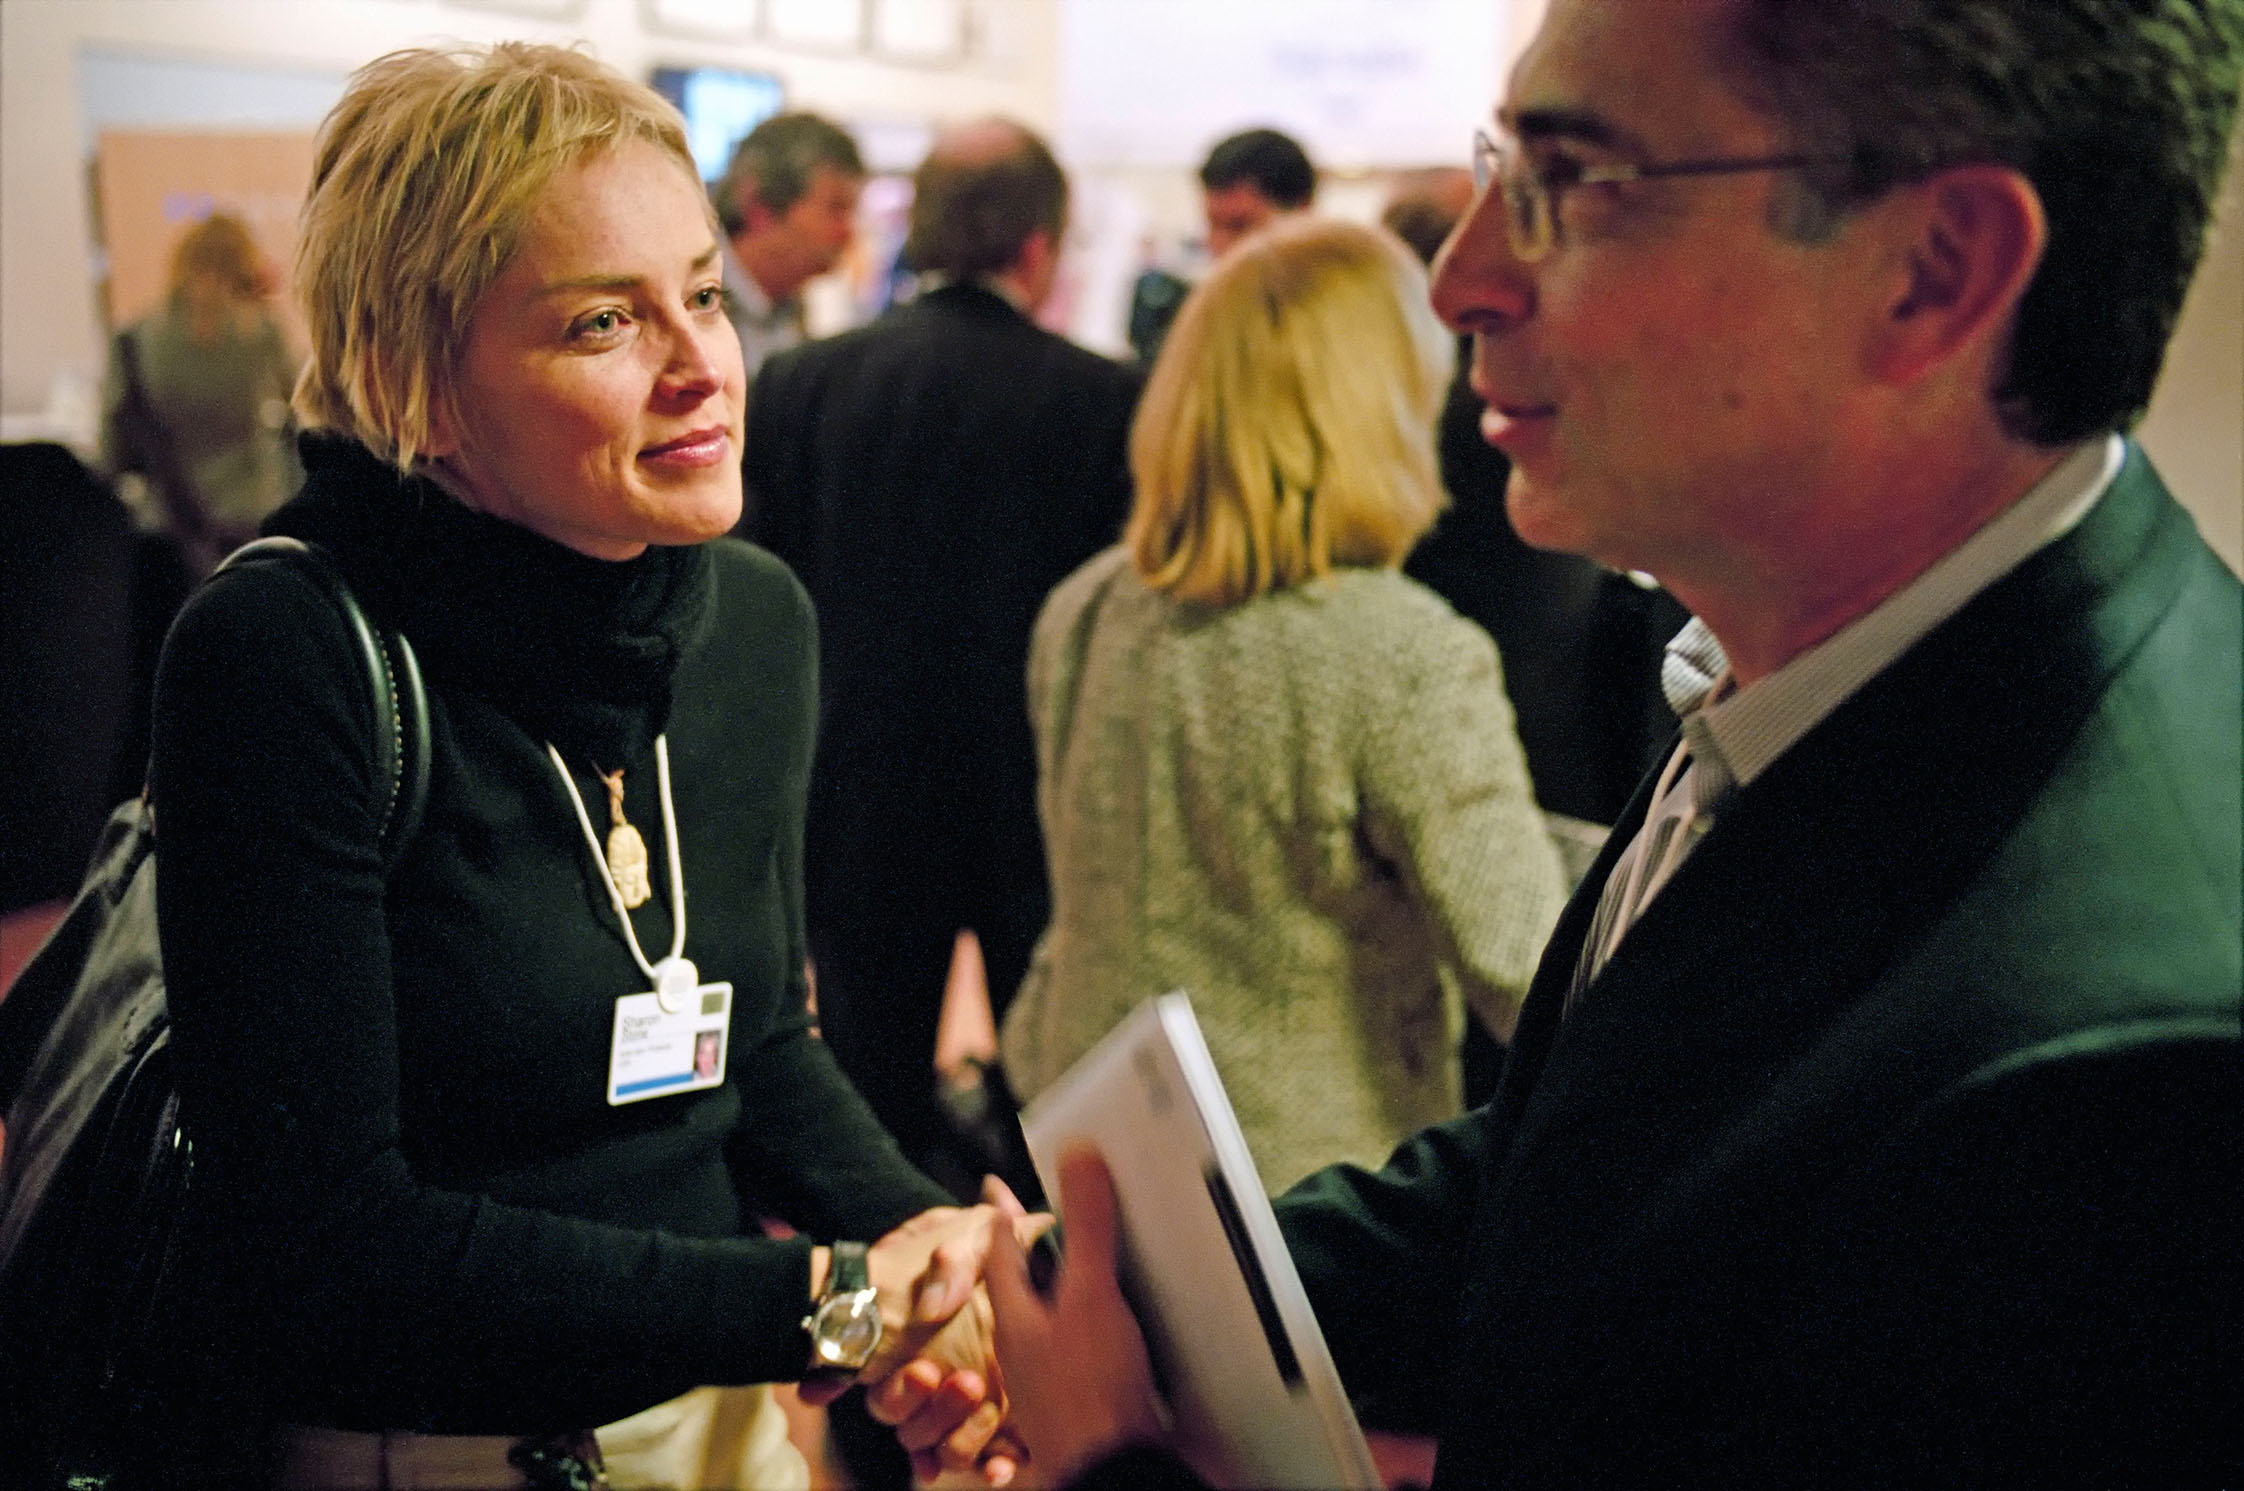 SWITZERLAND. Davos. Annual Meeting of the World Economic. 2005.Sharon Stone discussing Latin-American literature with Ernesto Zedillo Ponce de Leon (Director, Yale Center for the Study of Globalization (USA) and former President of Mexico).Contact email:New York : photography@magnumphotos.comParis : magnum@magnumphotos.frLondon : magnum@magnumphotos.co.ukTokyo : tokyo@magnumphotos.co.jpContact phones:New York : +1 212 929 6000Paris: + 33 1 53 42 50 00London: + 44 20 7490 1771Tokyo: + 81 3 3219 0771Image URL:http://www.magnumphotos.com/Archive/C.aspx?VP3=ViewBox_VPage&IID=2TYRYDA299DD&CT=Image&IT=ZoomImage01_VForm